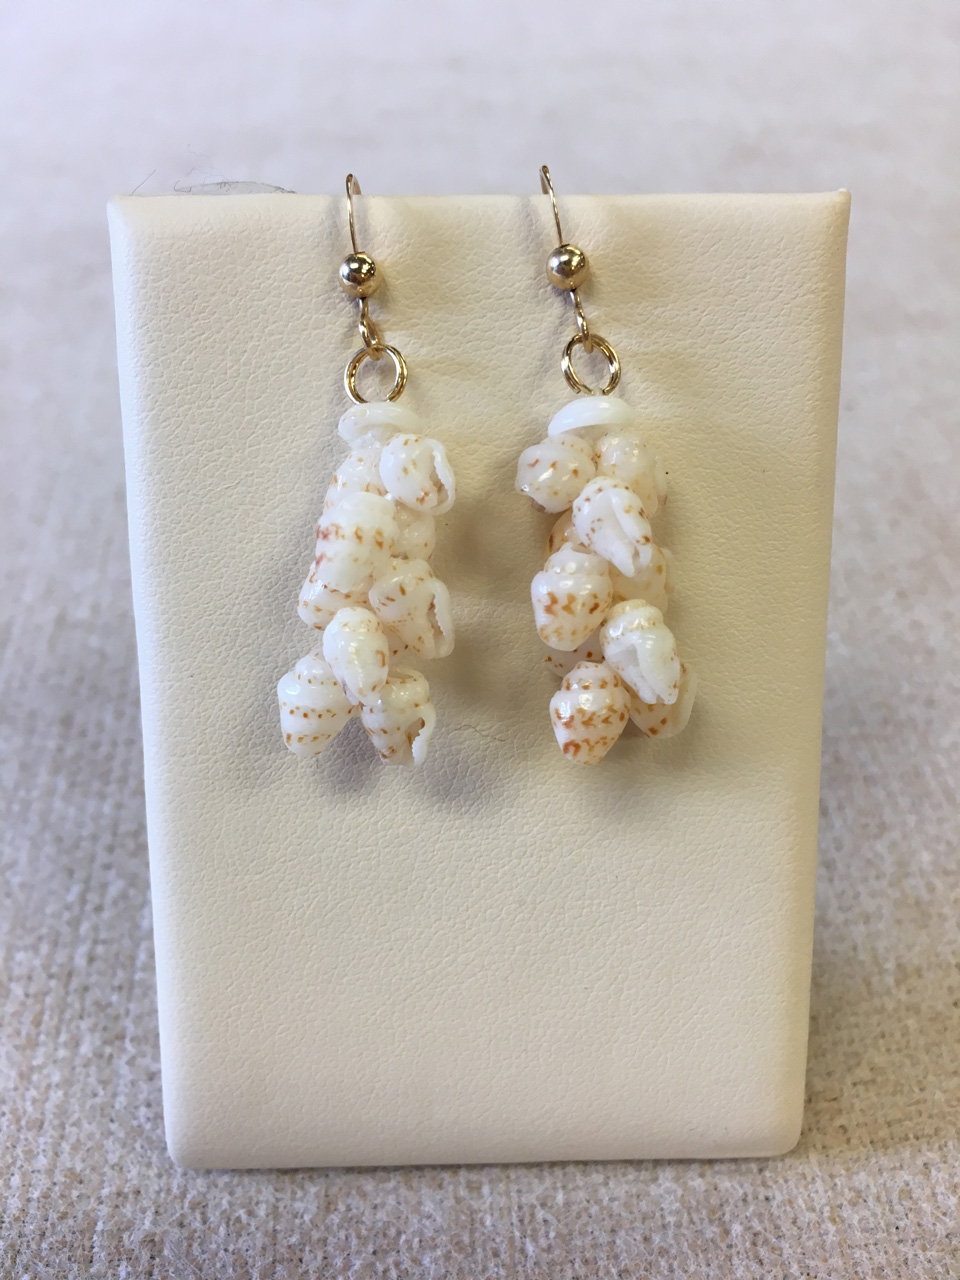 Niihau Niʻihau Momi Earrings